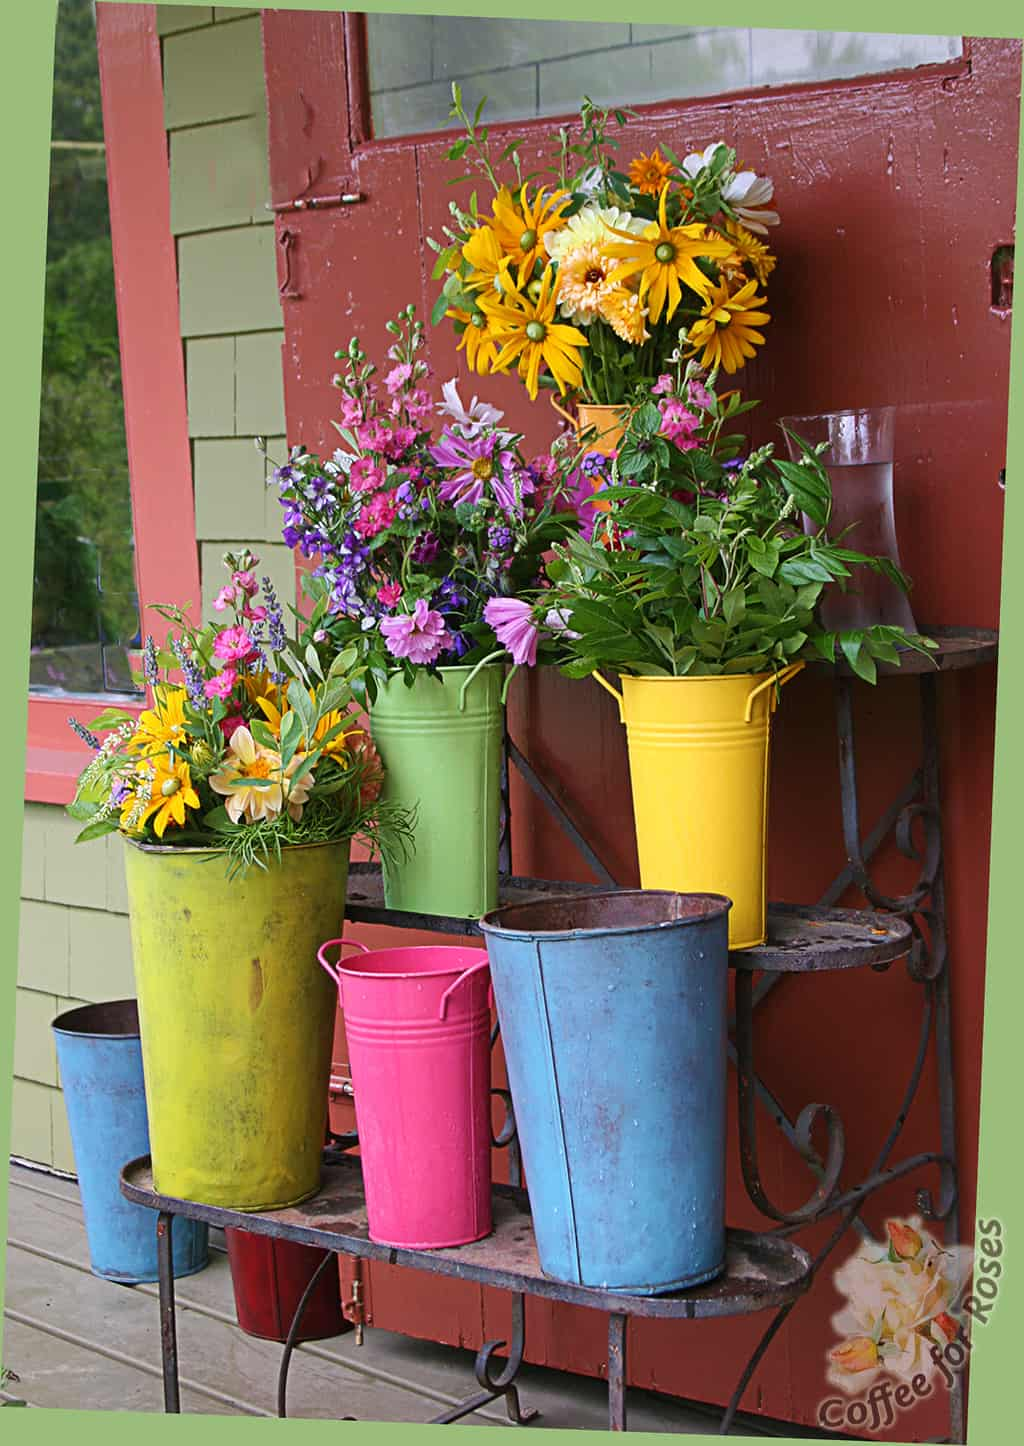 Painted Objects for Garden Displays